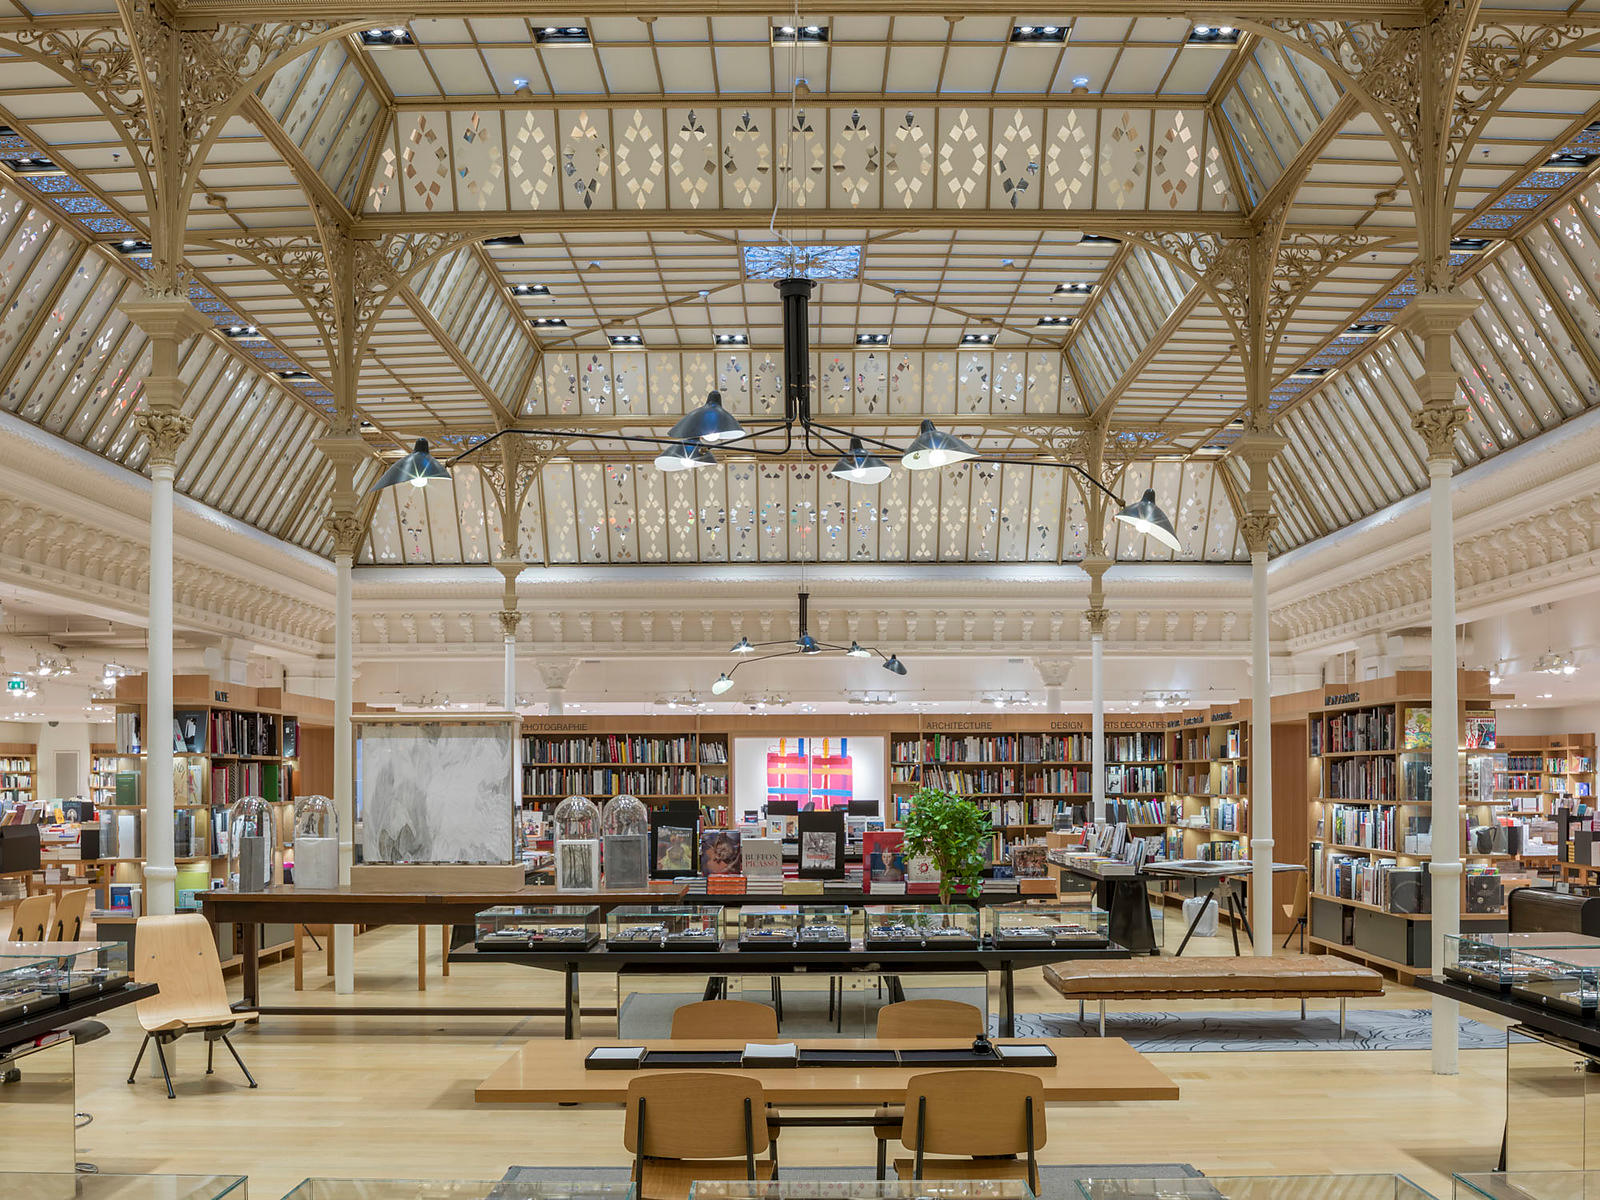 Retail architecture photographer Paris - LE BON MARCHE RIVE GAUCHE PARIS